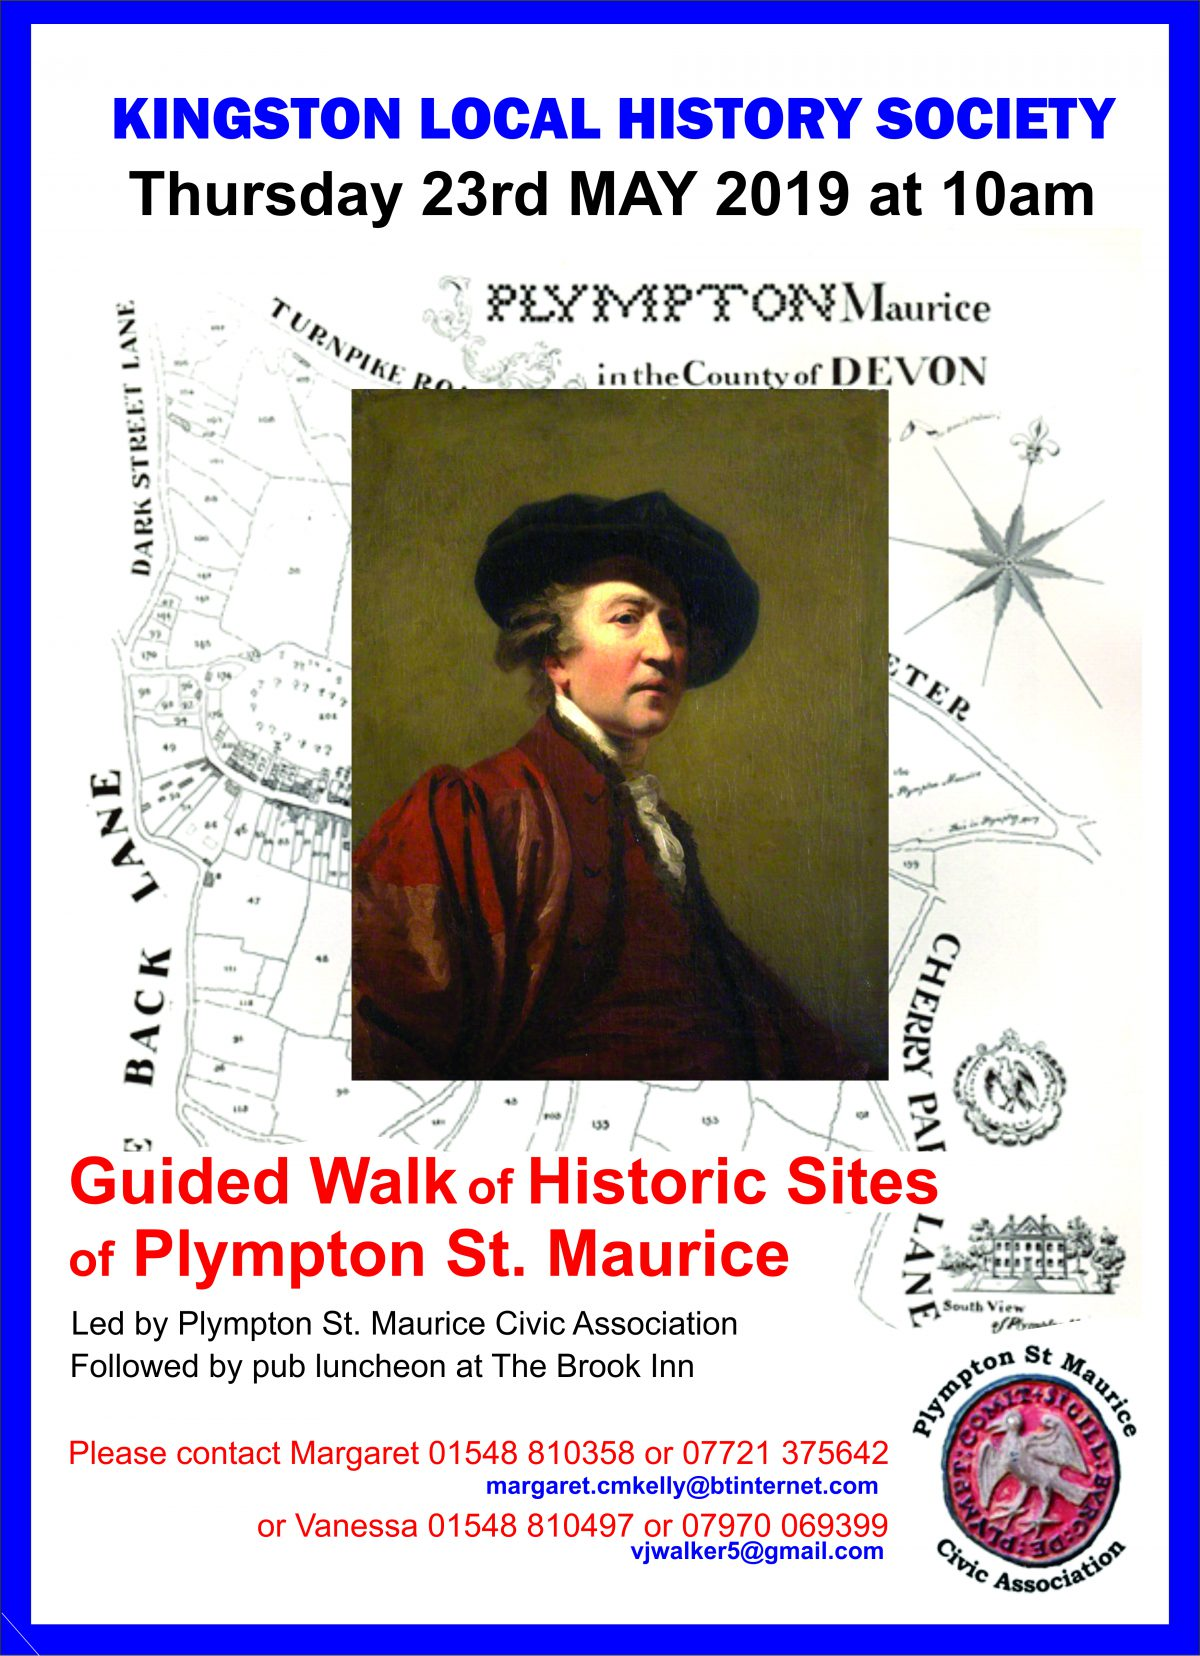 Guided Walk of Historic Sites of Plympton St. Maurice  May 23rd 2019